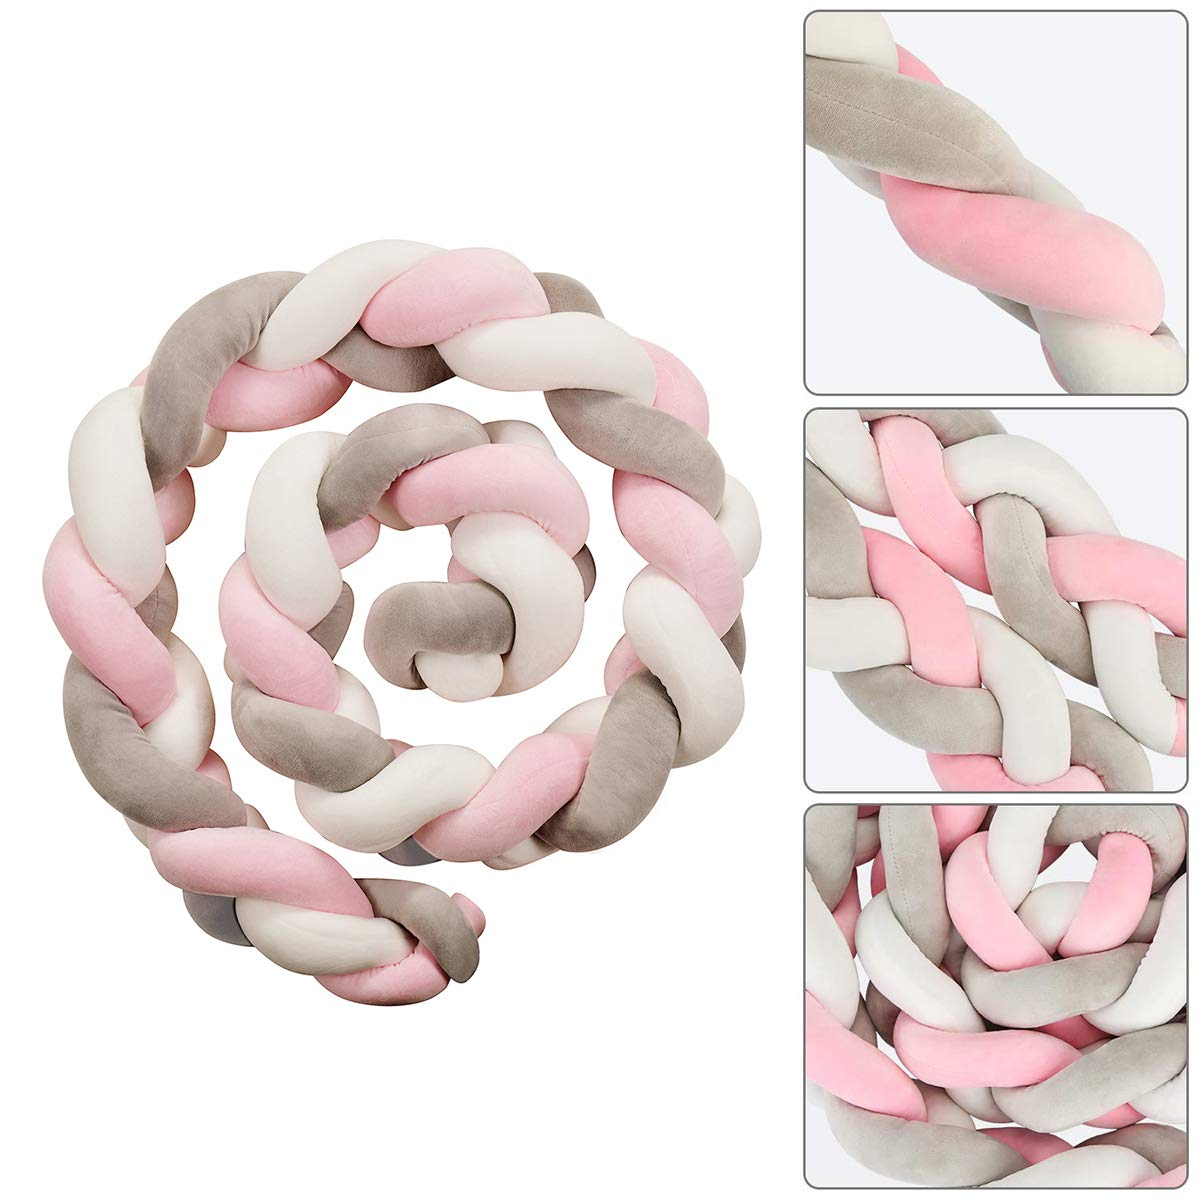 """78.7/"""" Soft Knotted Sides Protector Machine Washable Newborn Gift Nursery Decor for Girls Boys TEKI Bedside Protector"""